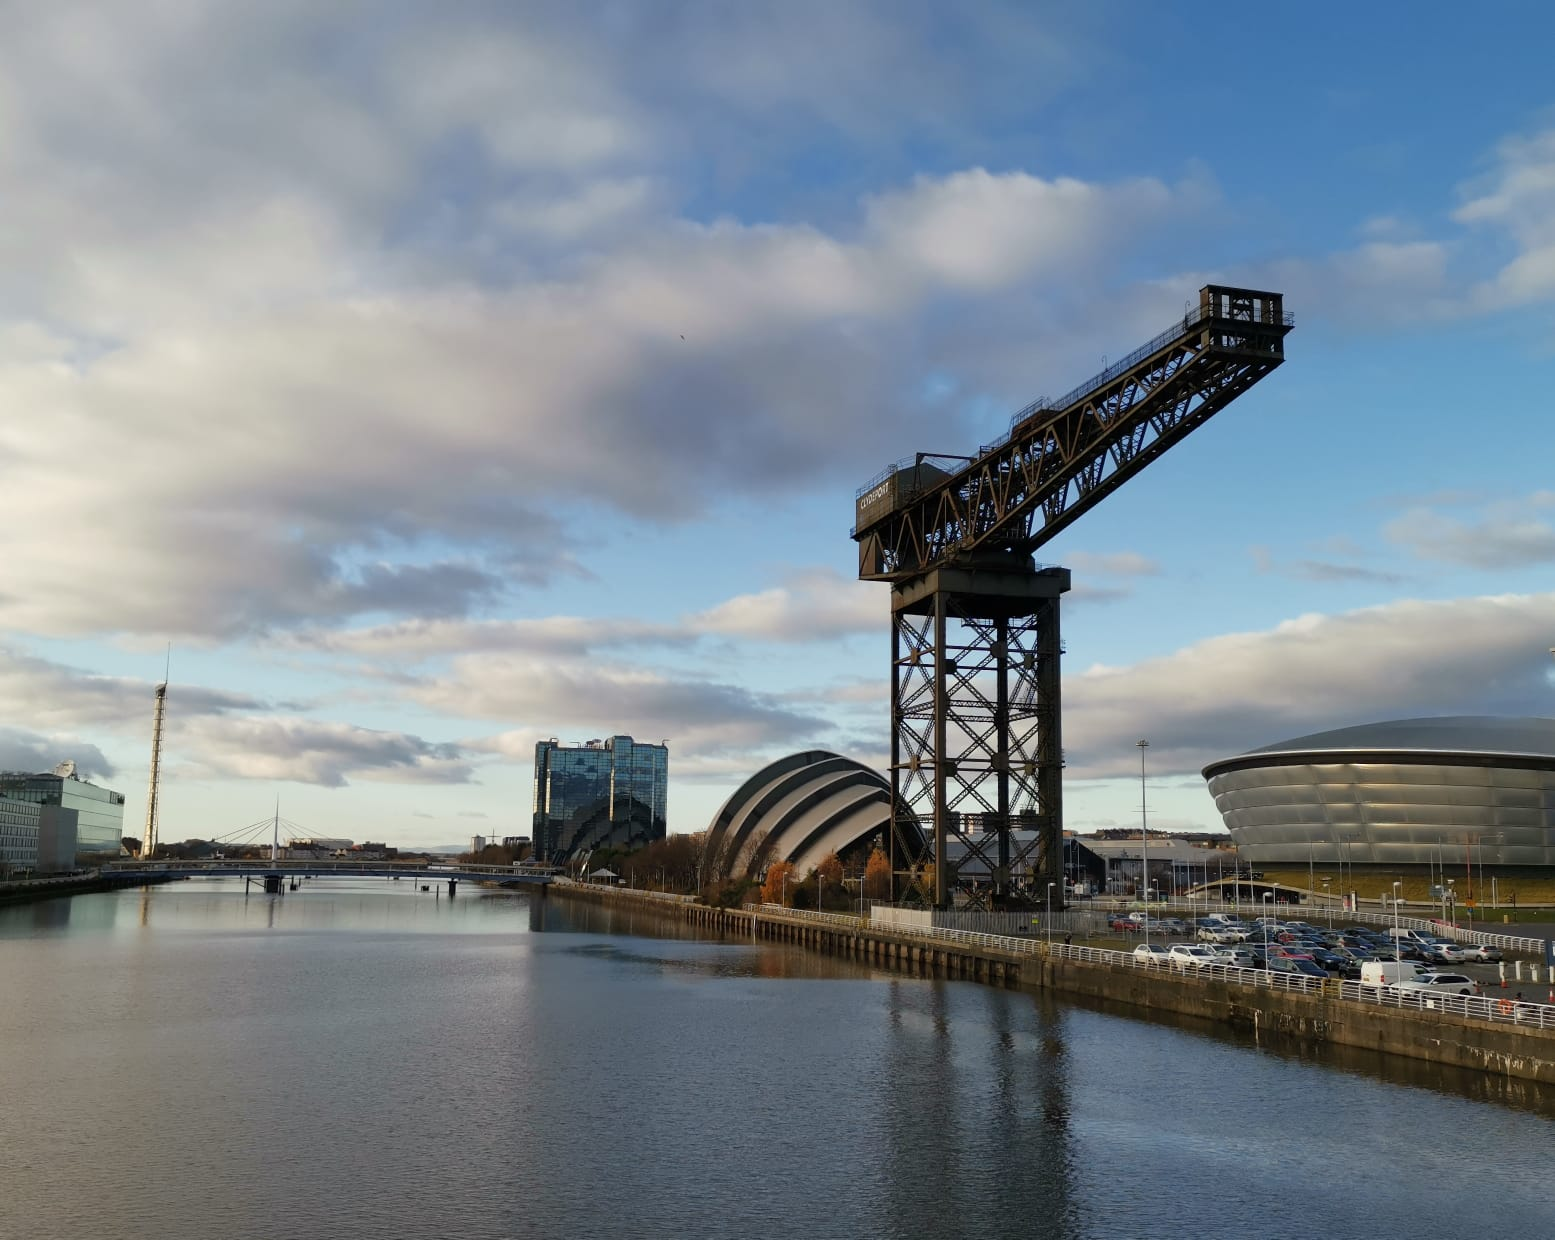 With 100 days until COP26, does Scotland offer a message of climate action hope?